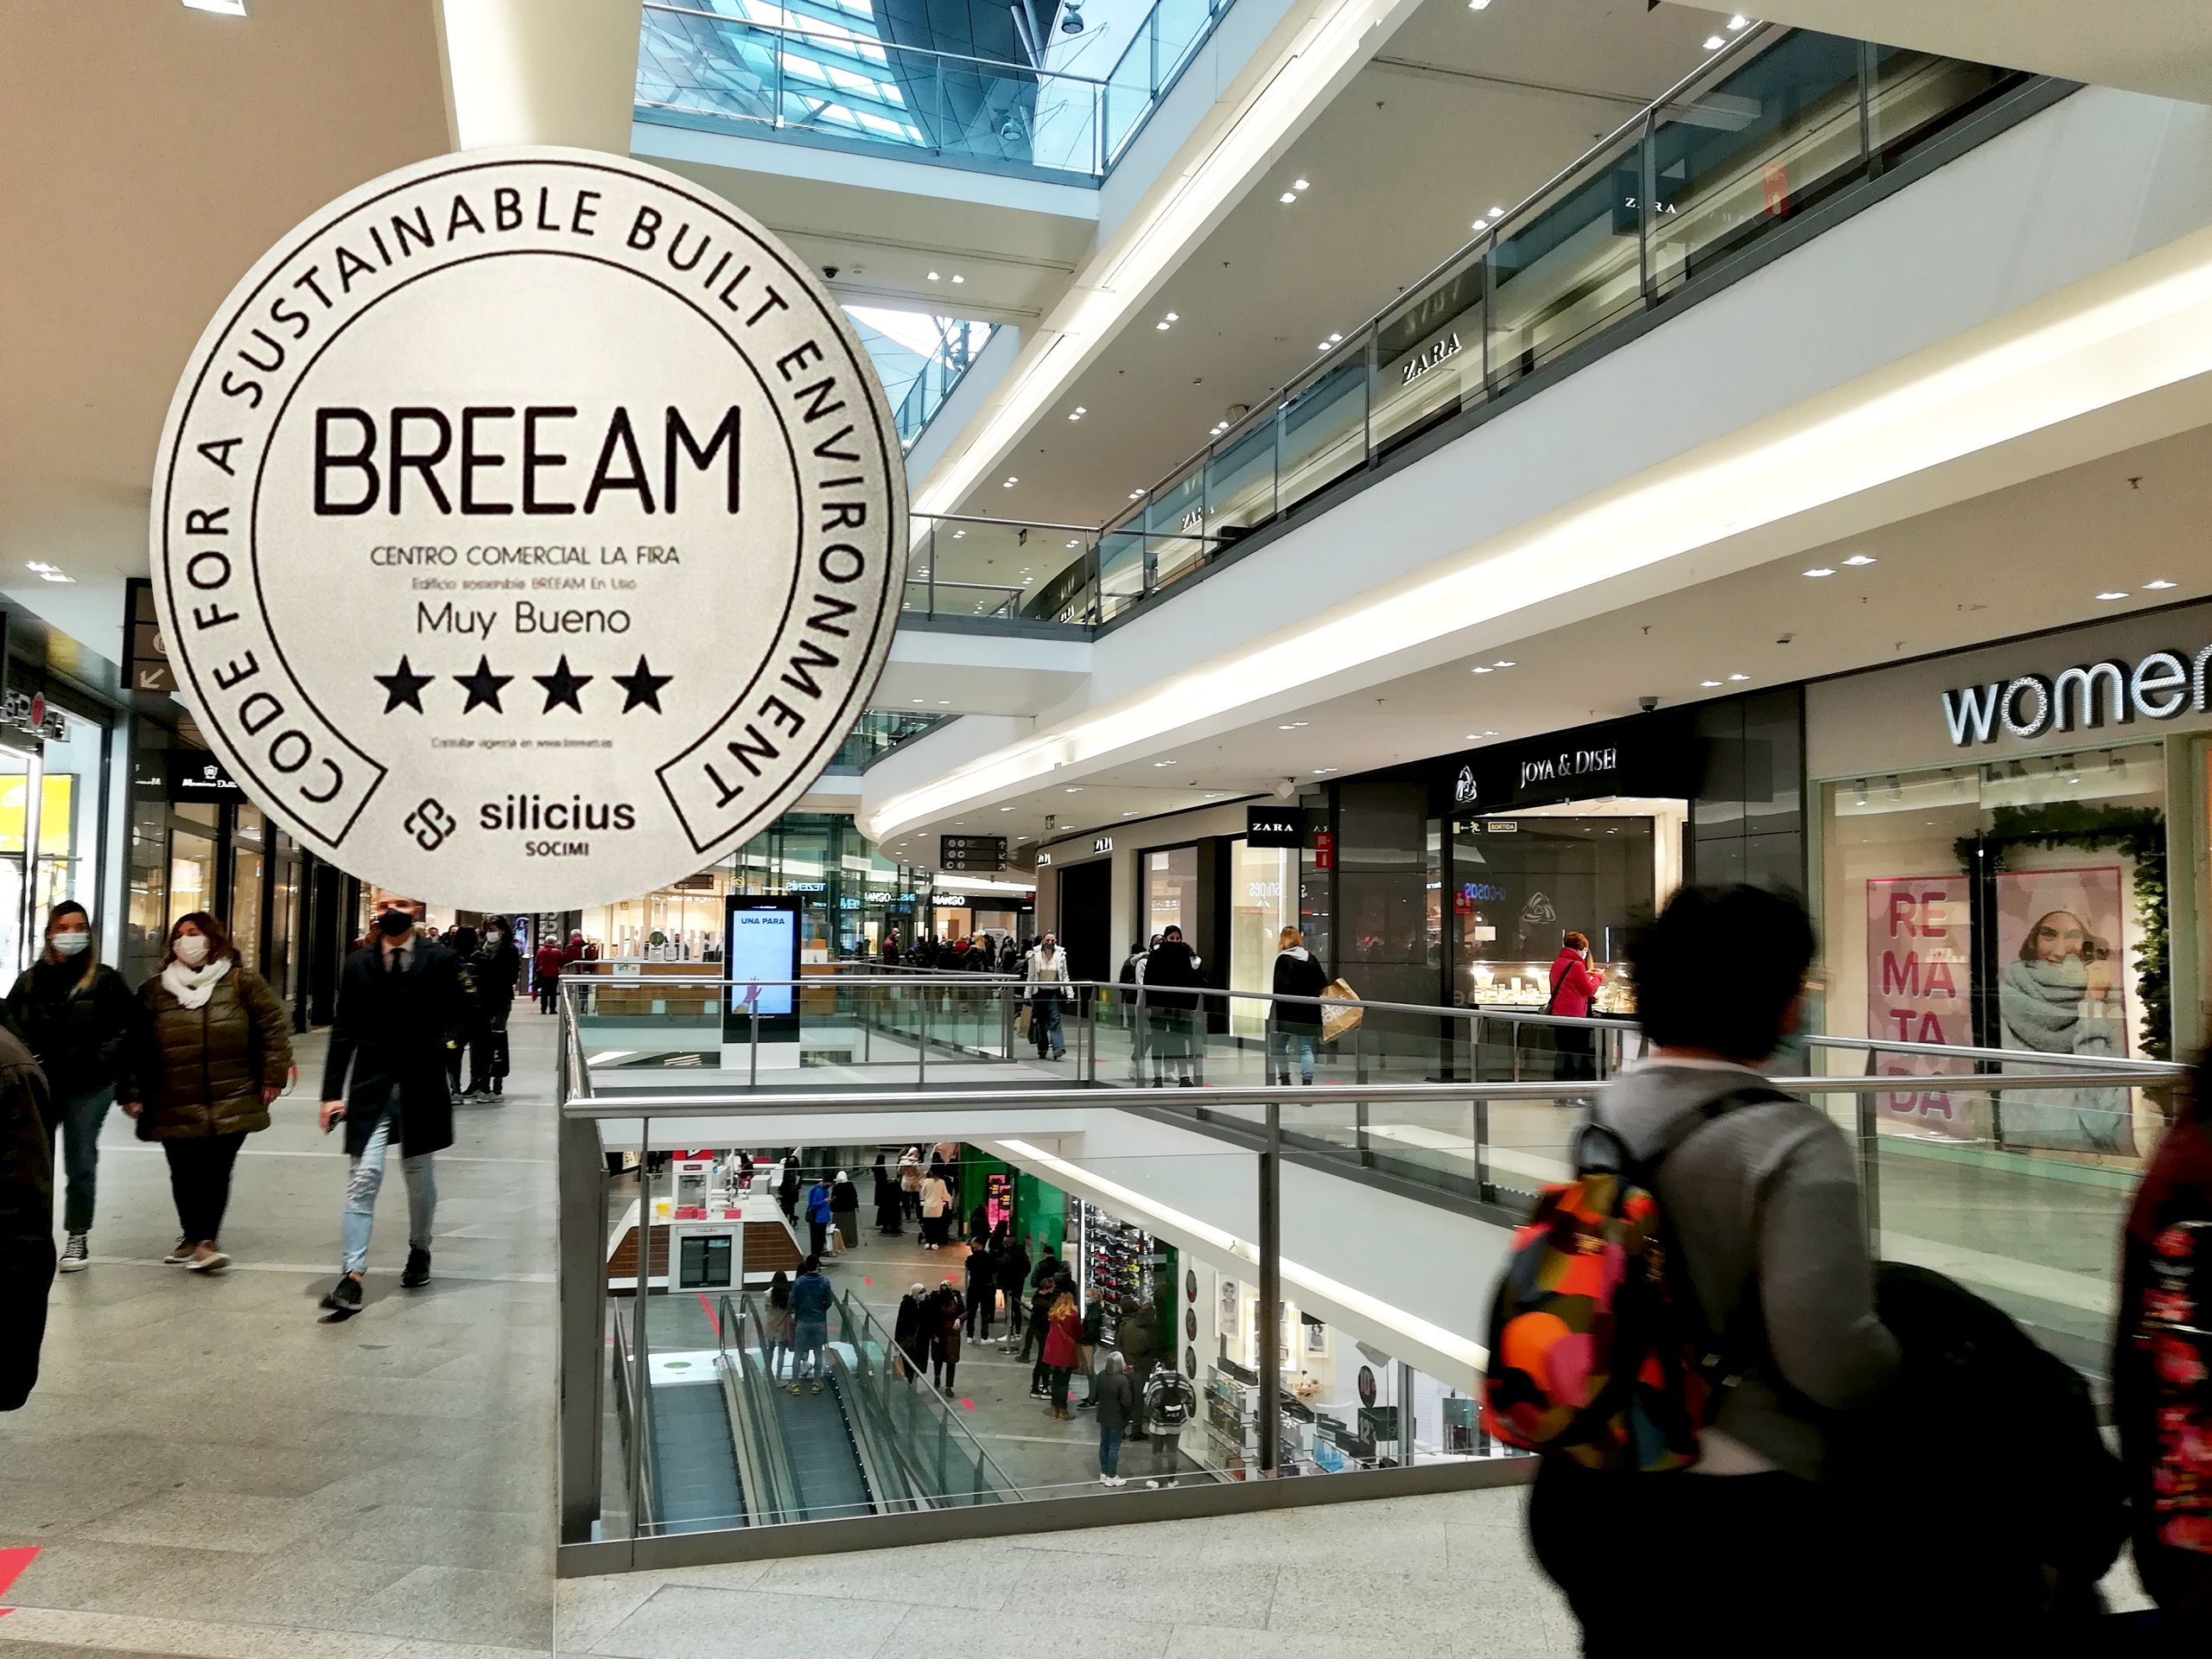 SILICIUS obtains the Breeam® certificate for its Shopping Centre La Fira and advances in its commitment to environmental sustainability